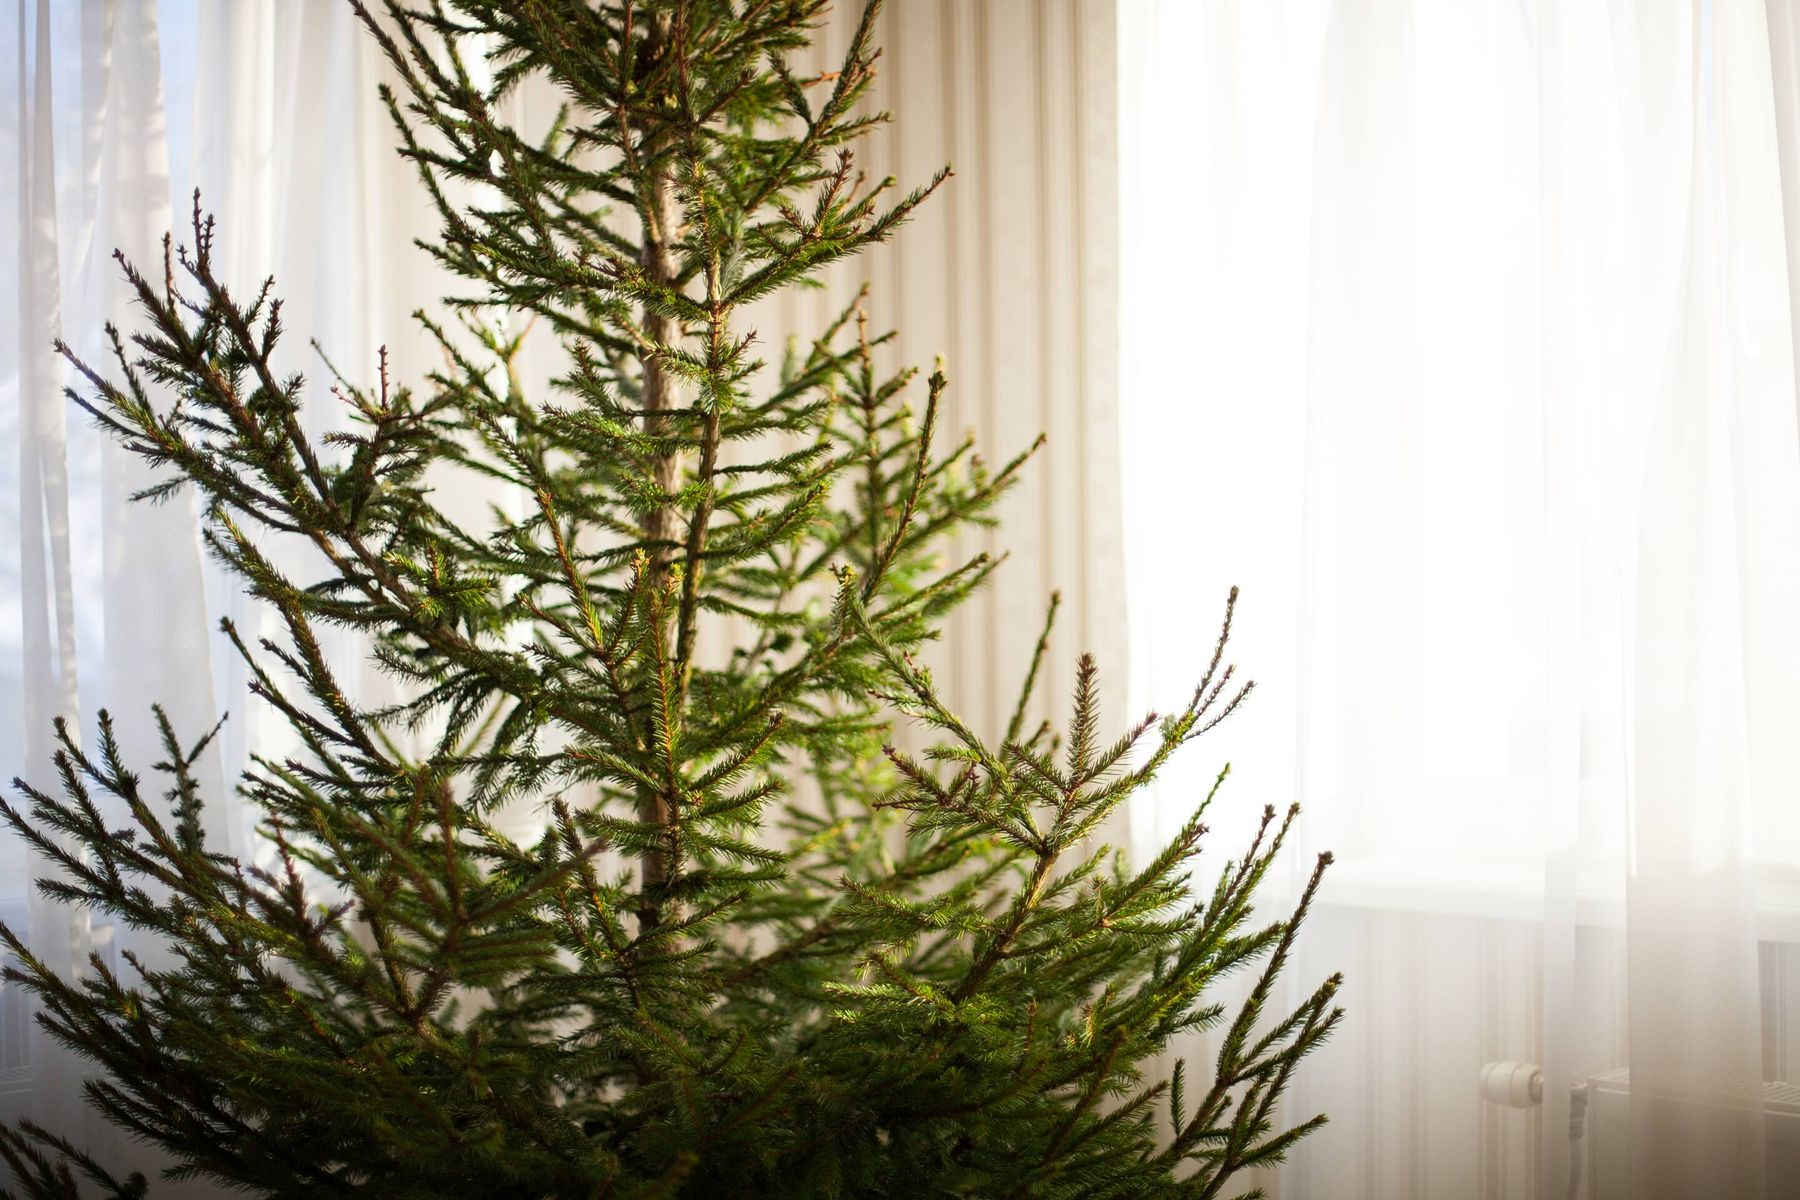 Closeup of a bare christmas spruce tree at home without decorations